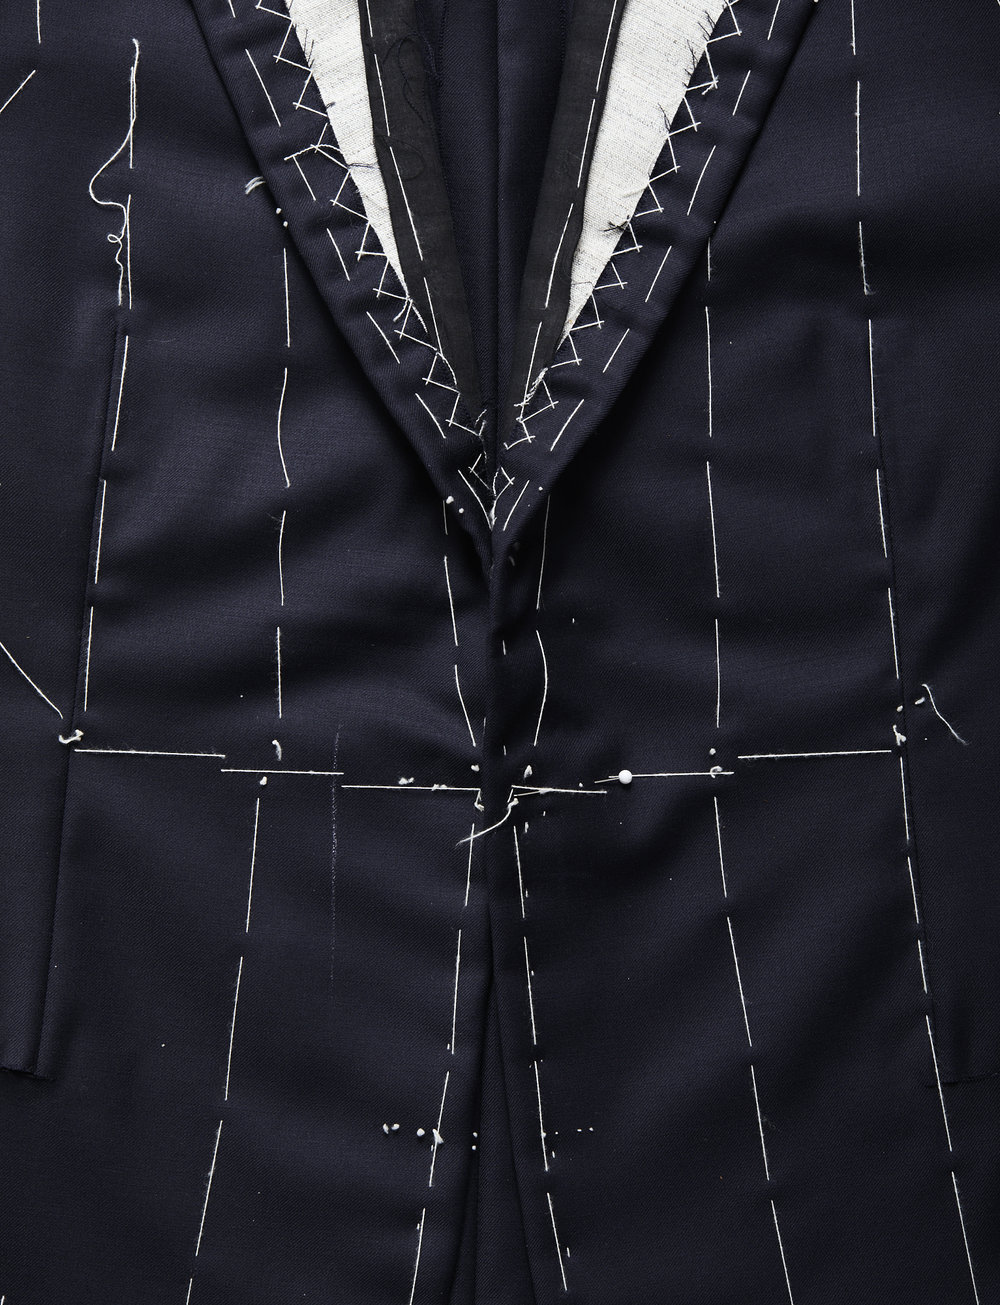 Stitching_Reference_Jacket_127.jpg